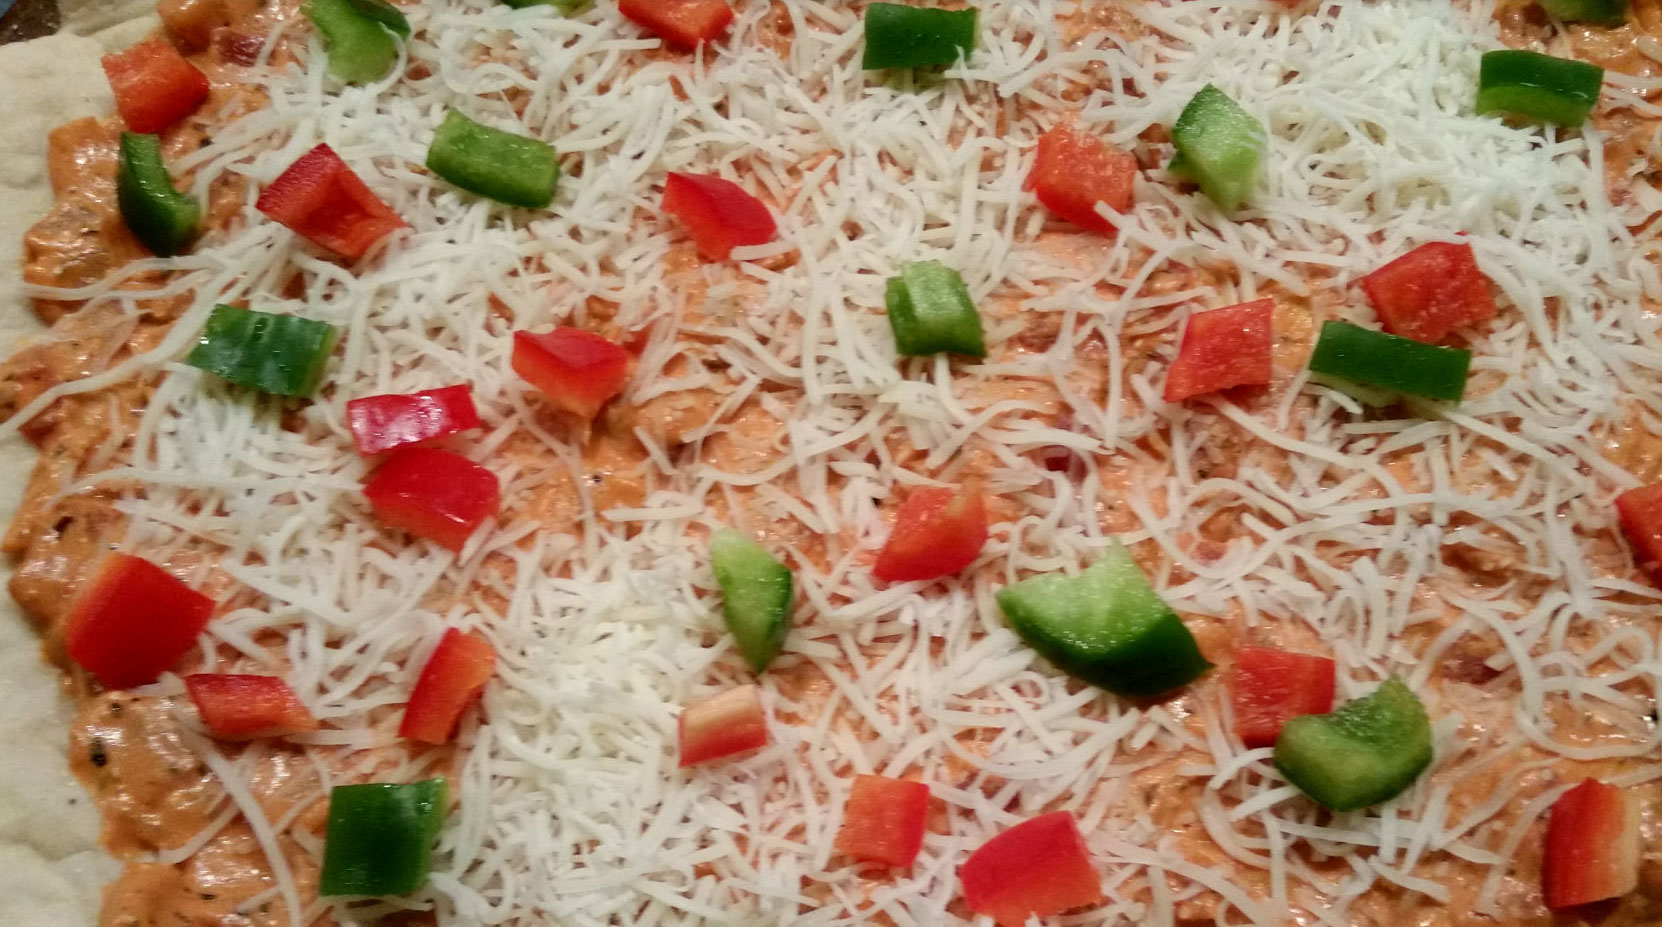 Flamingo Pizza, courtesy of What's for Dinner Moms?